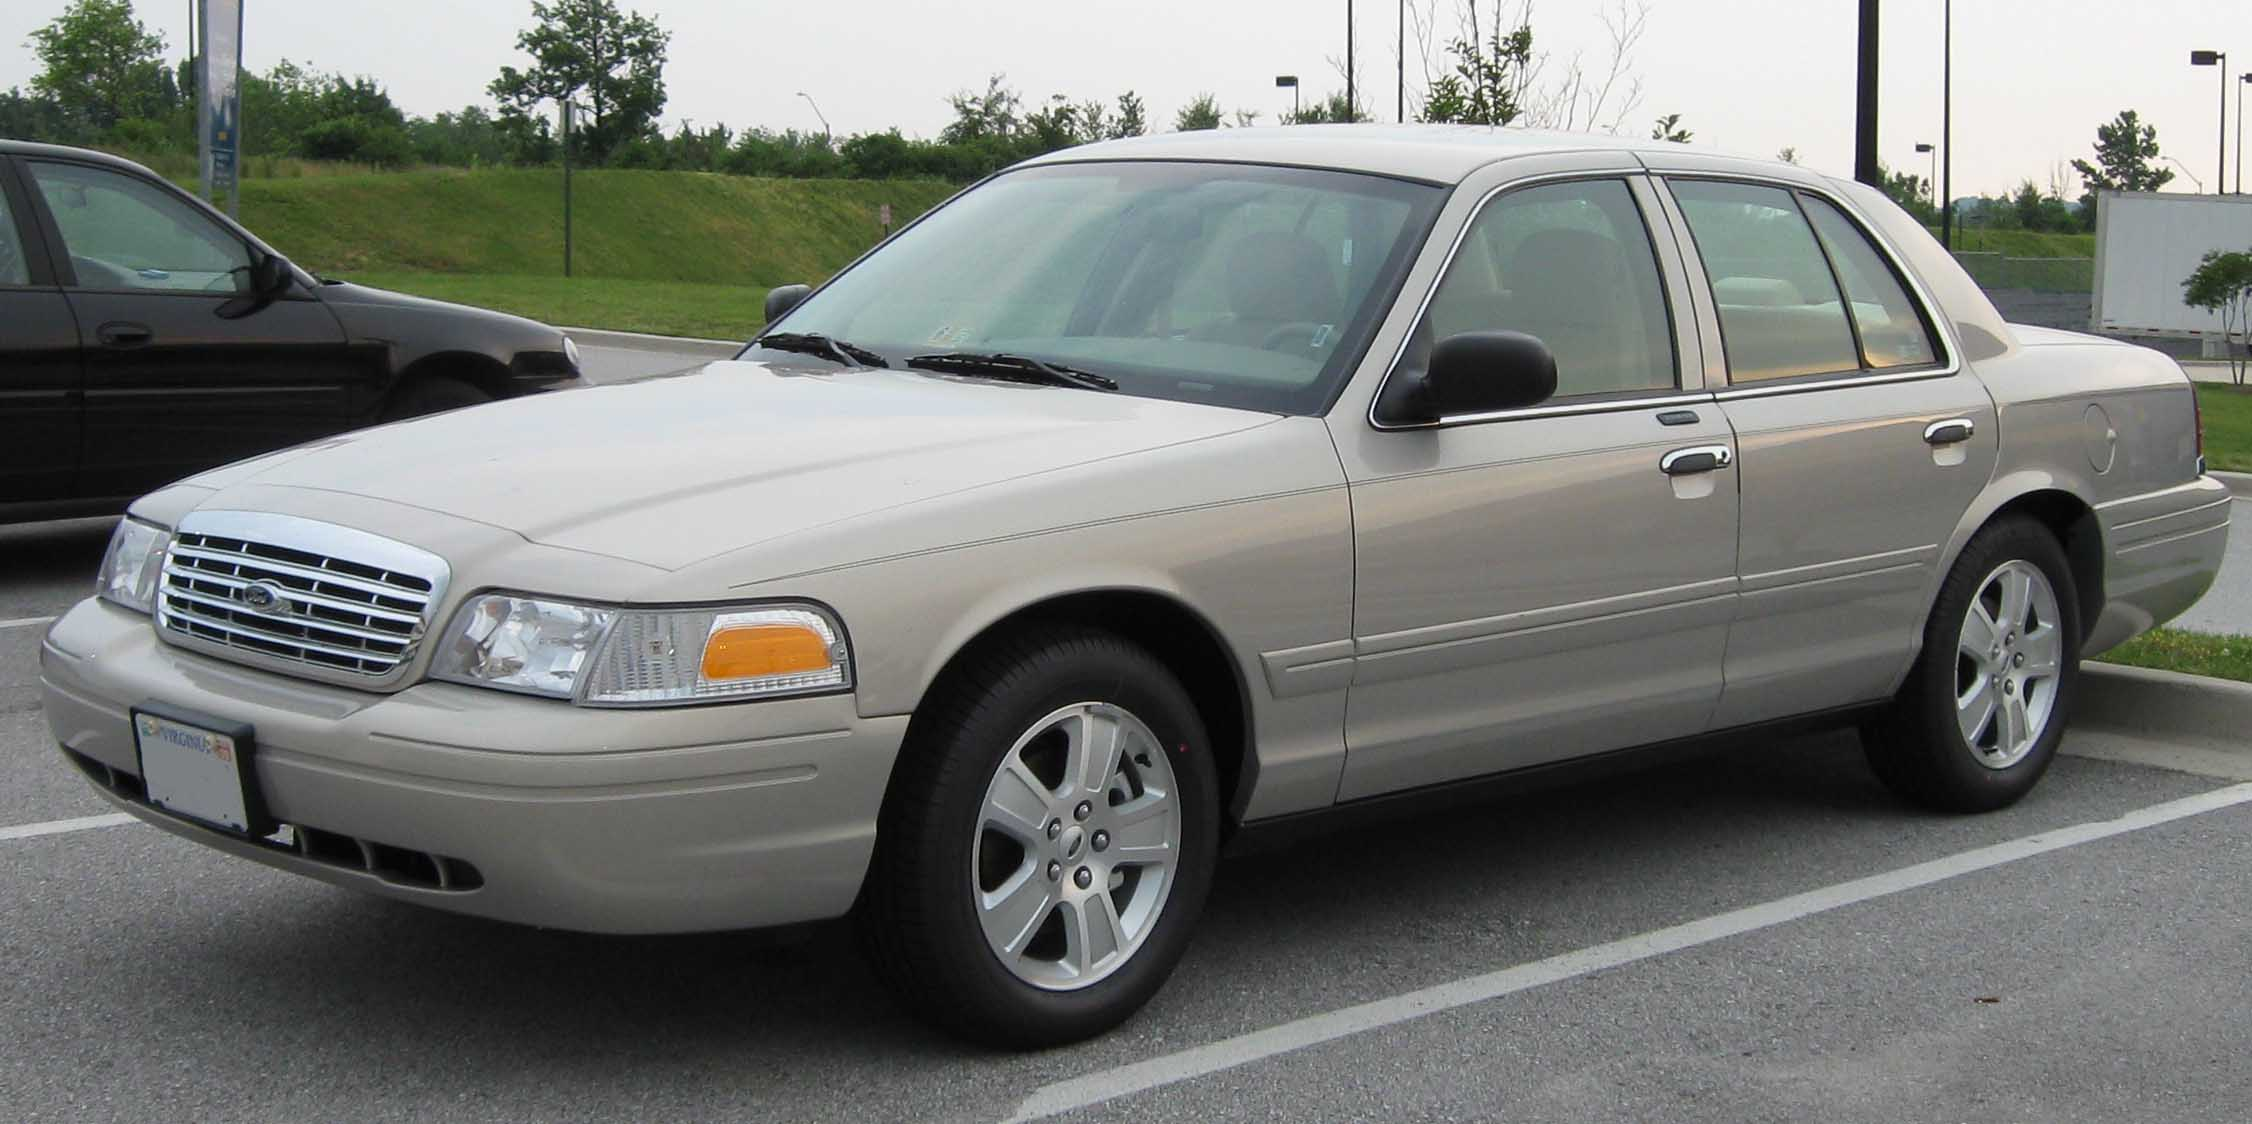 2009 Ford Crown Victoria #1